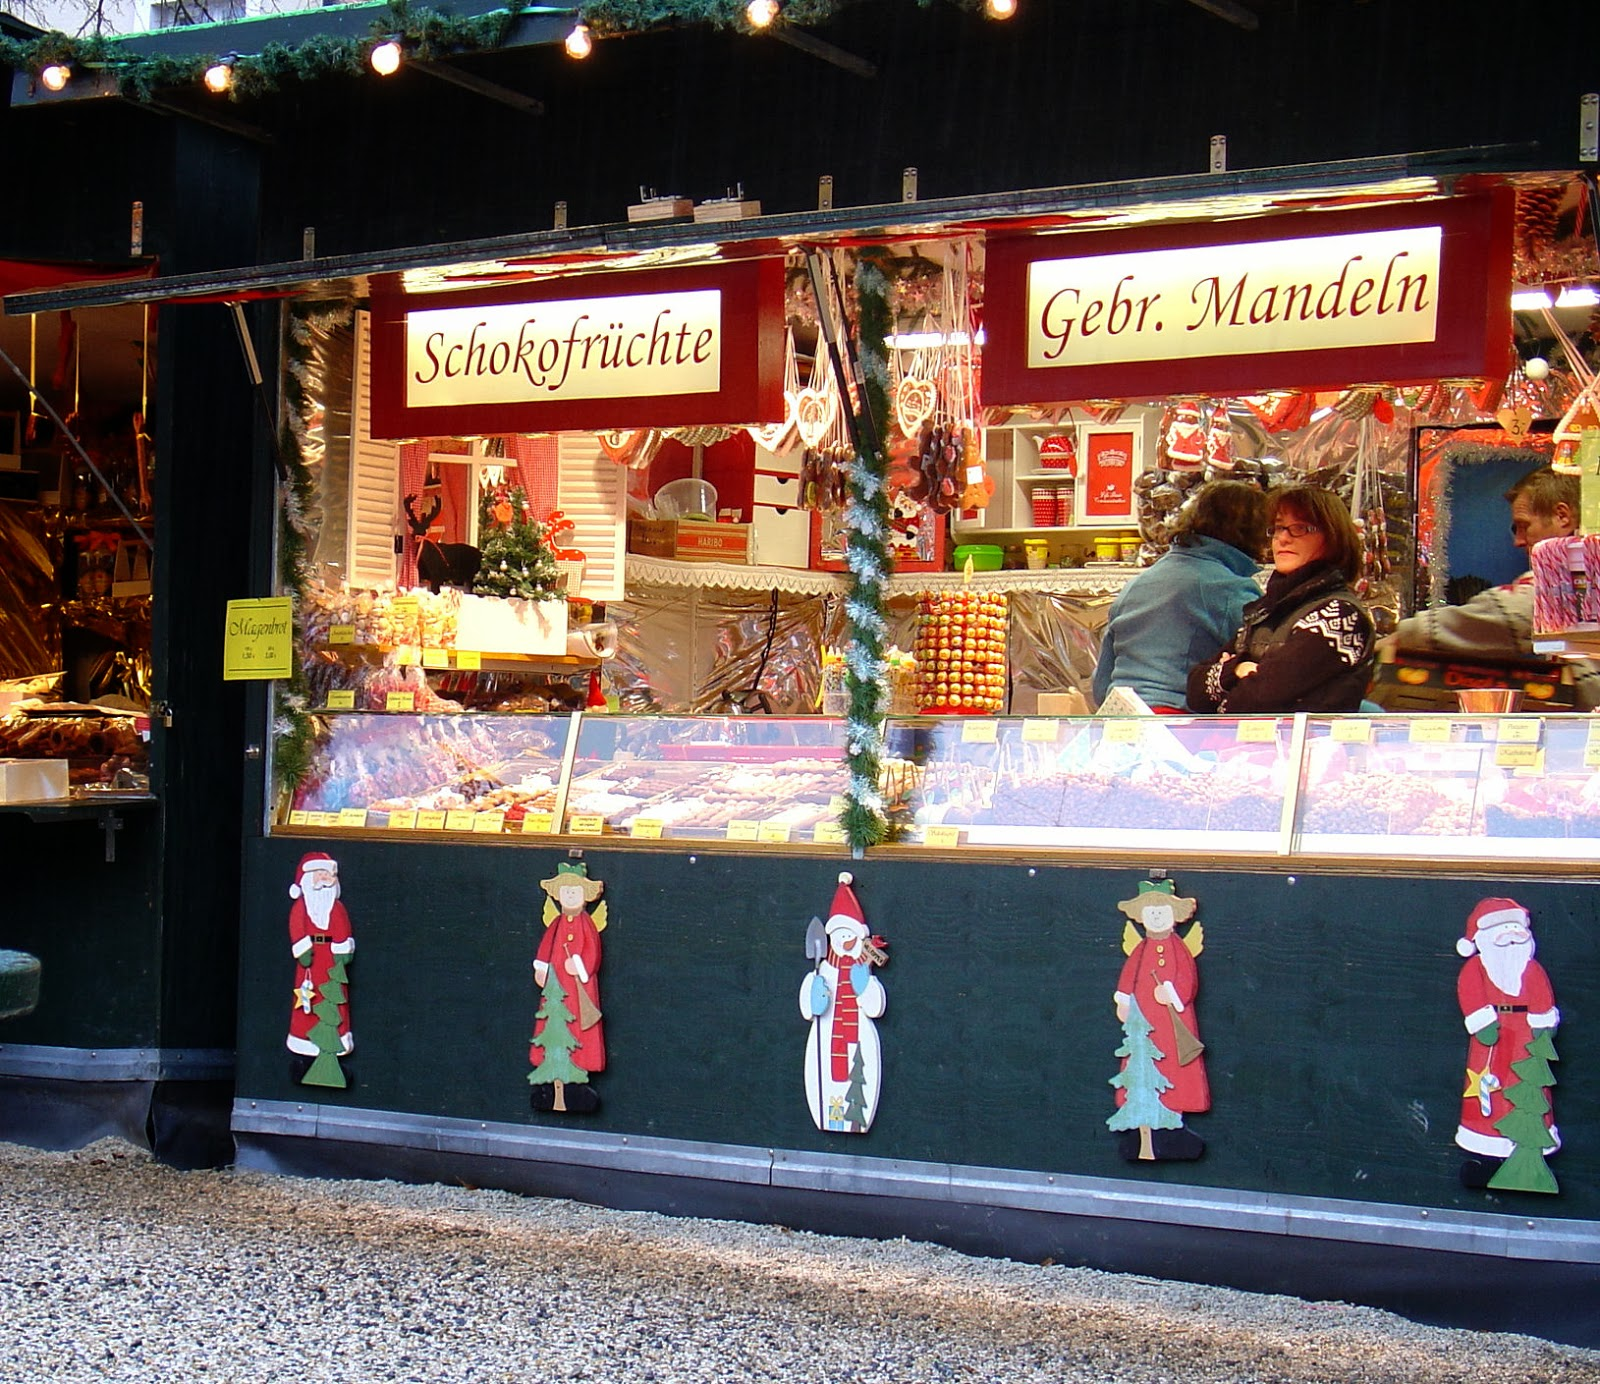 Colorful chalets brimming with gifts and tasty treats line the walkways at the market.